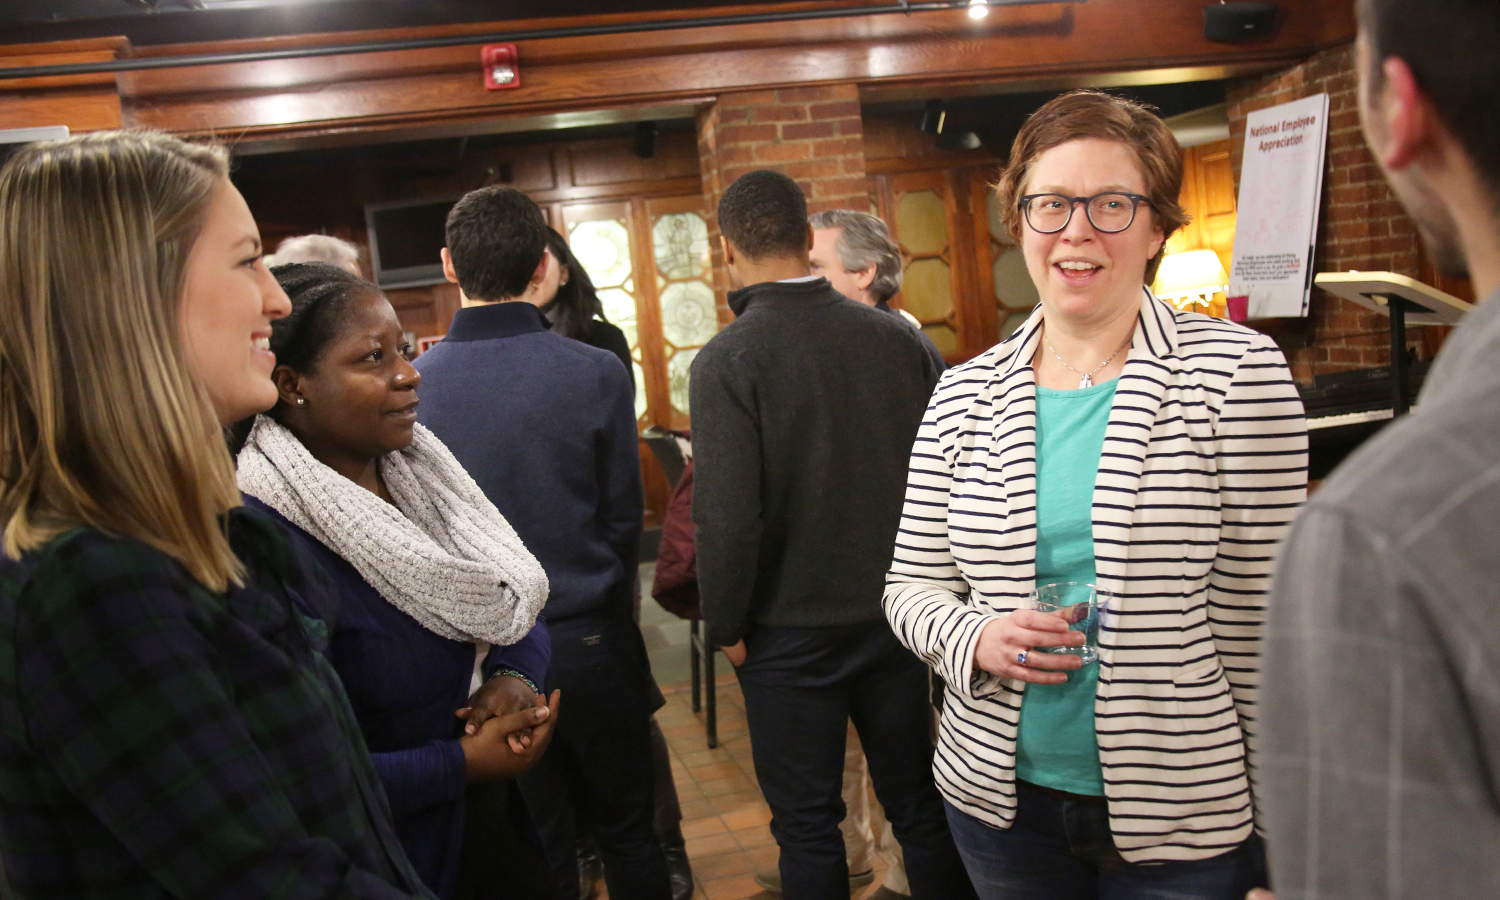 Molly Neureuter '18 (left) and Hilda Agyekum '18 chat with William Smith Executive Council Historian Kate Strouse Canada '98 in the Cellar Pub.